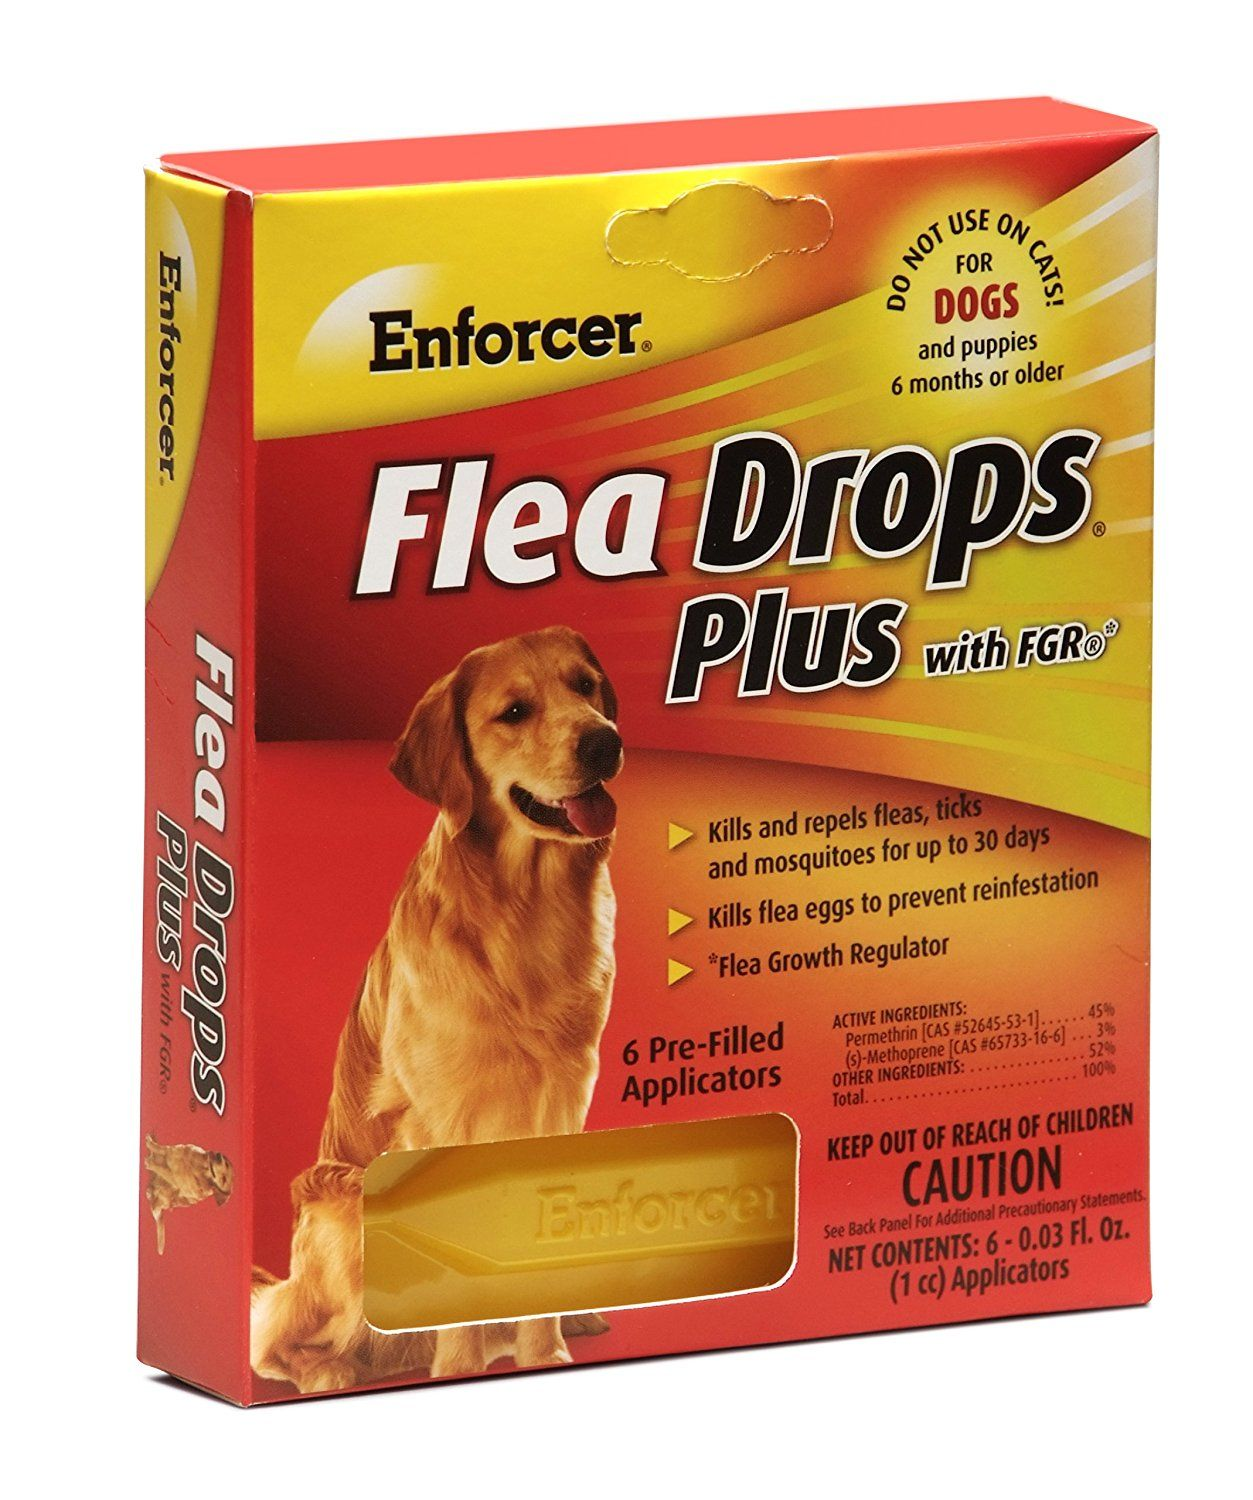 Enforcer 6 Pack Flea Drops Plus For Dogs For More Information Visit Now Flea And Tick Control Fleas Dogs Food Animals